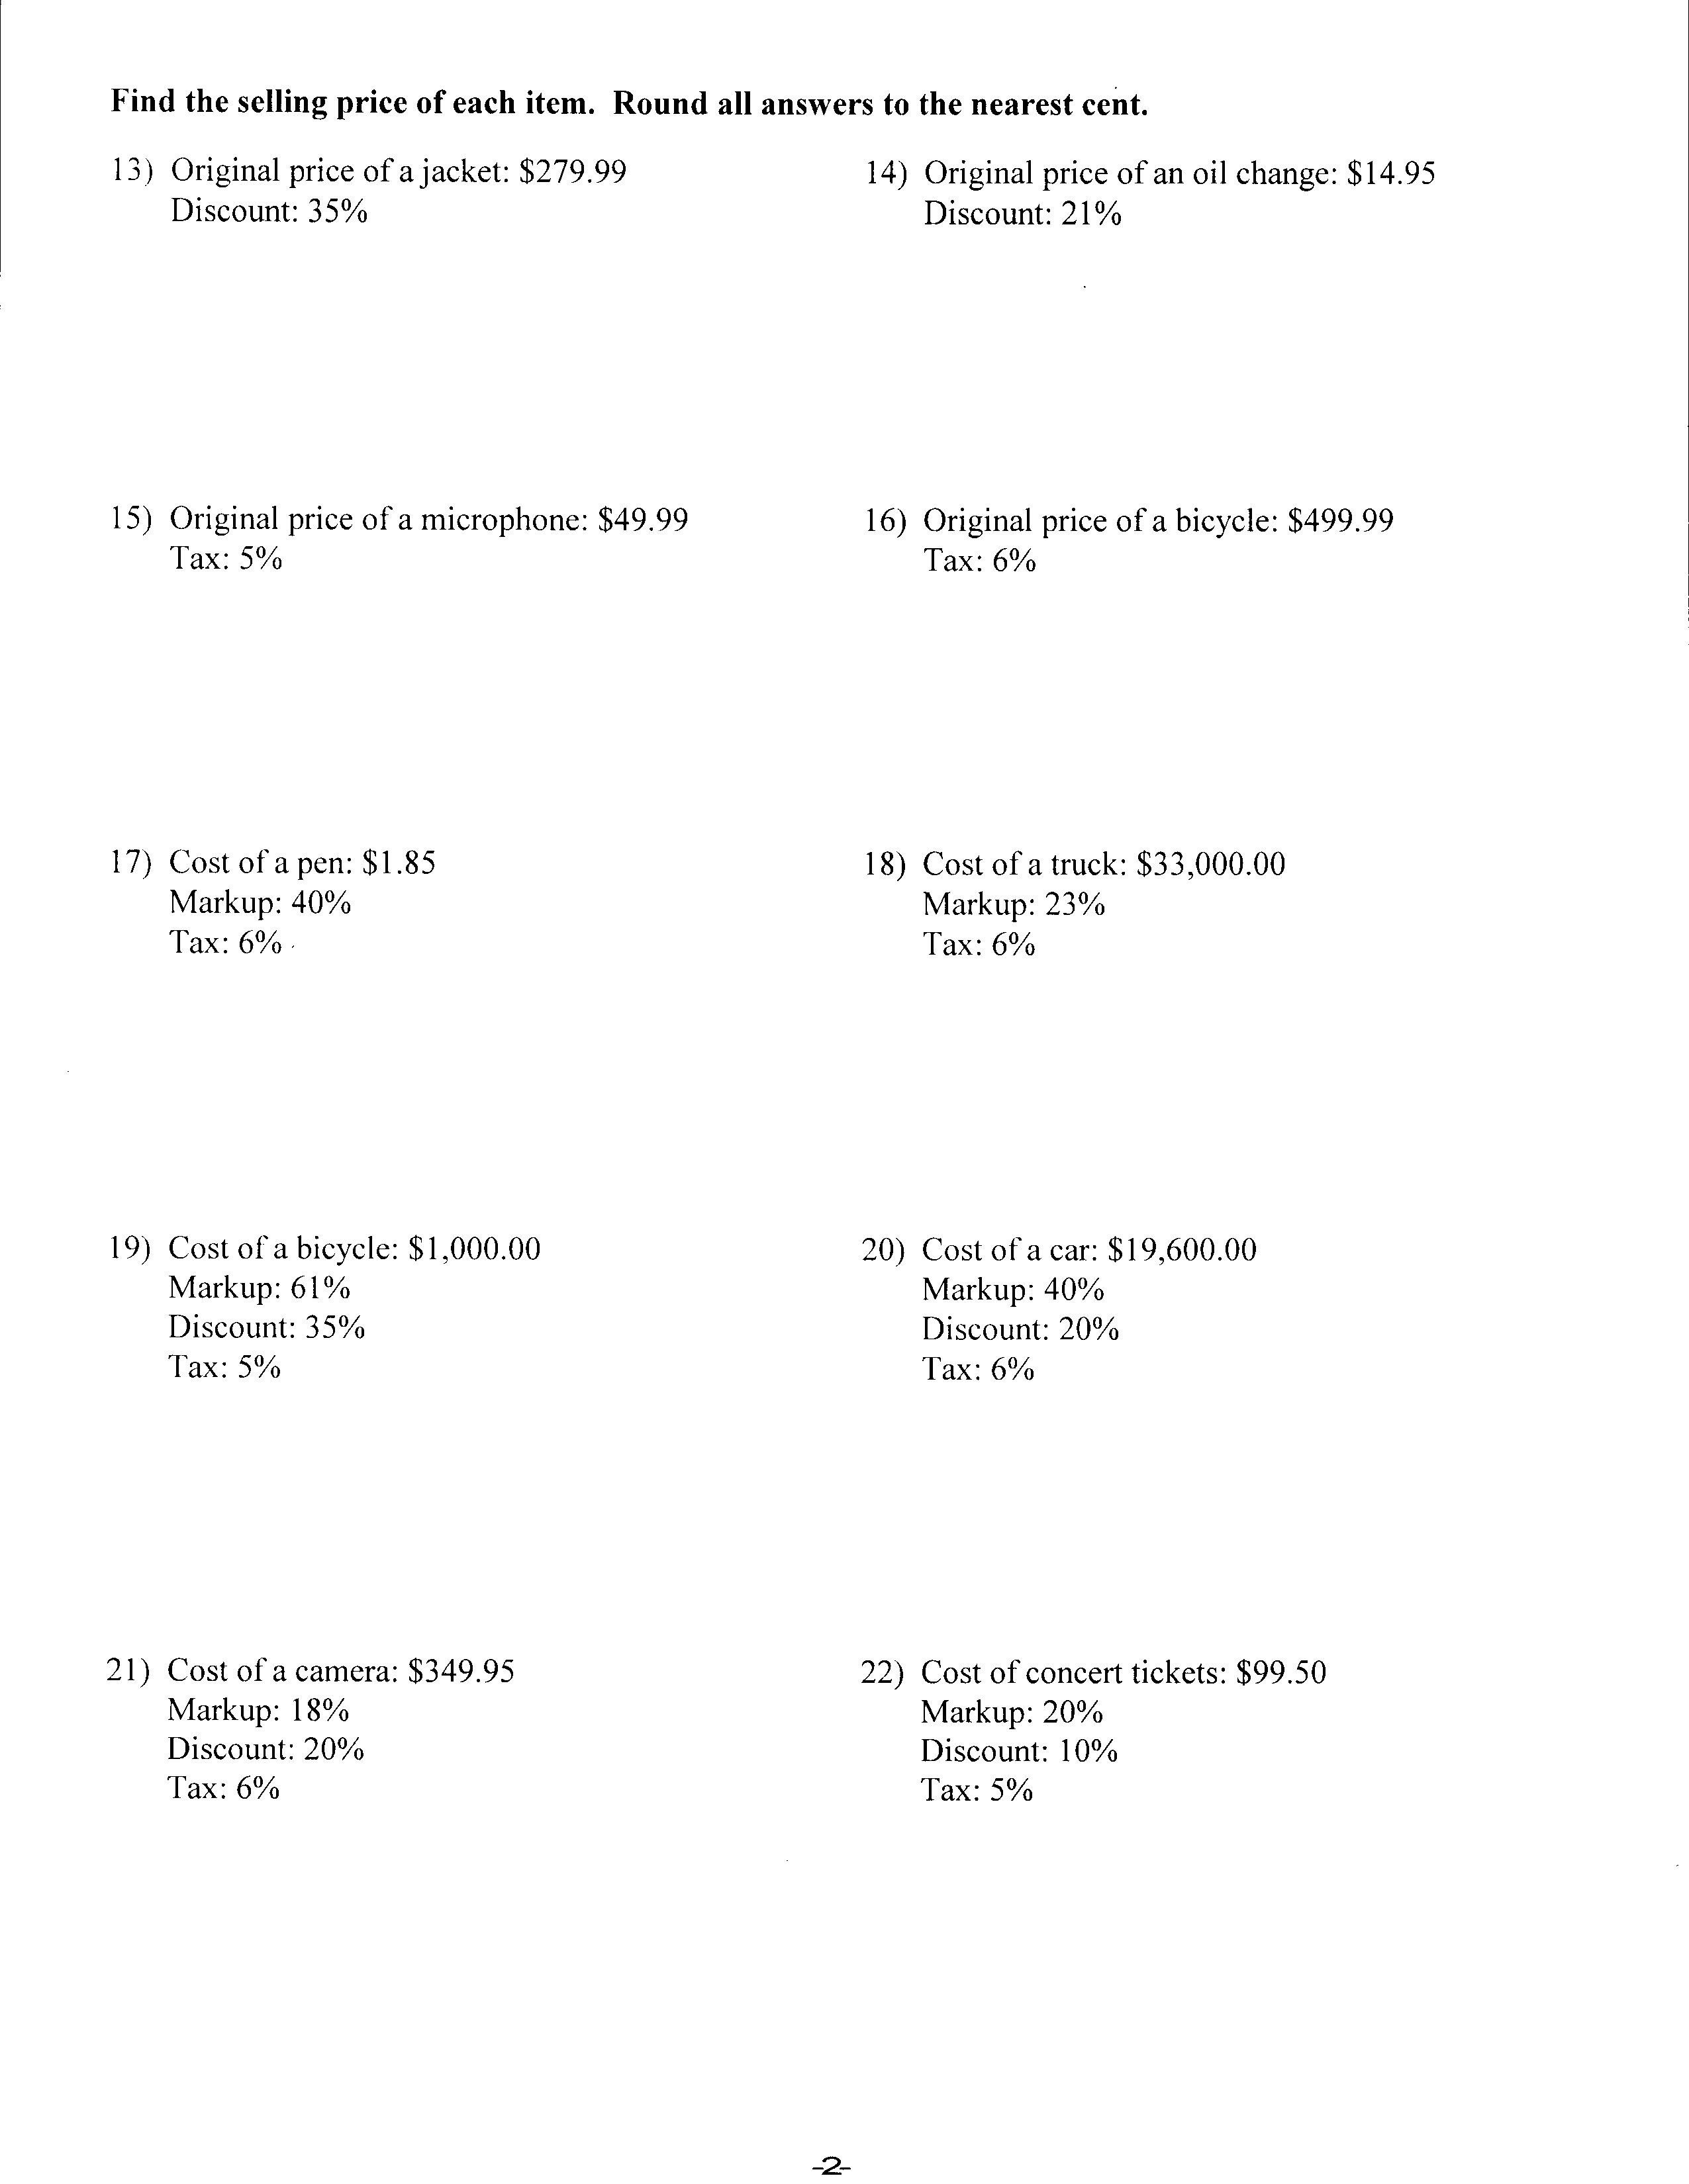 Discount Worksheets  Mathworksheets As Well As Markup And Discount Worksheet